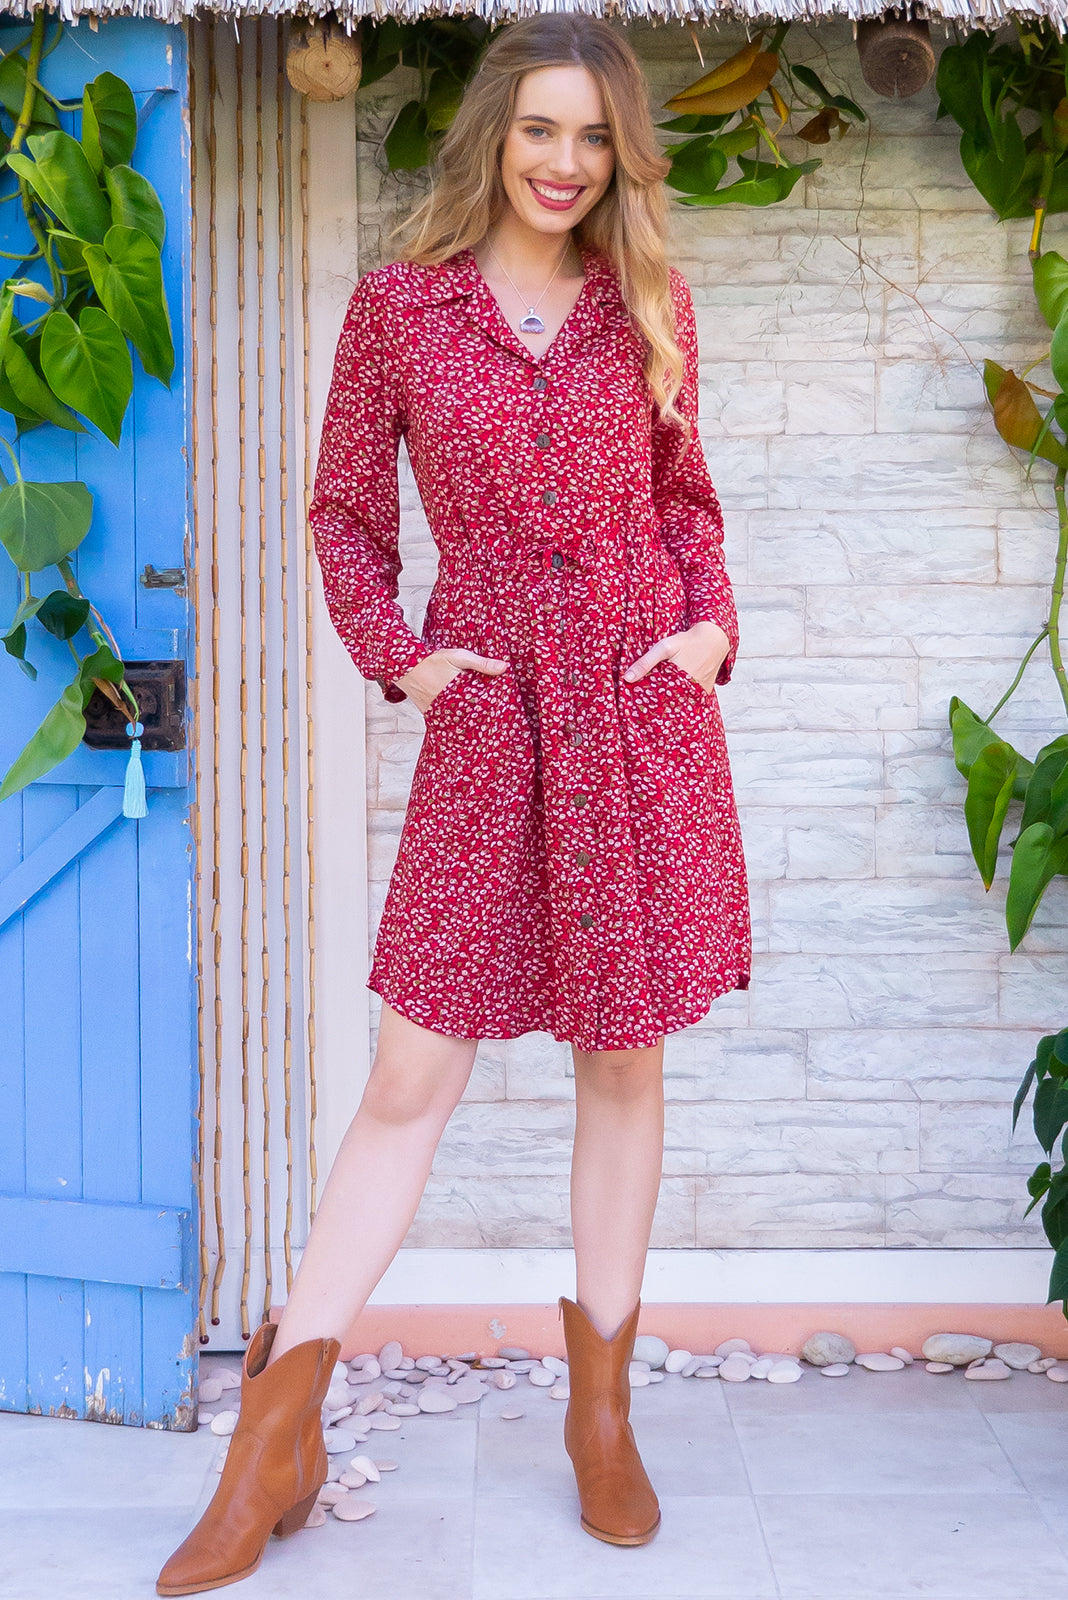 Alexandra Redcurrant Shirt Dress features a functional button front, long sleeve, drawstring waist and chic collar and it comes in a strong red ditzy floral print on 100% rayon